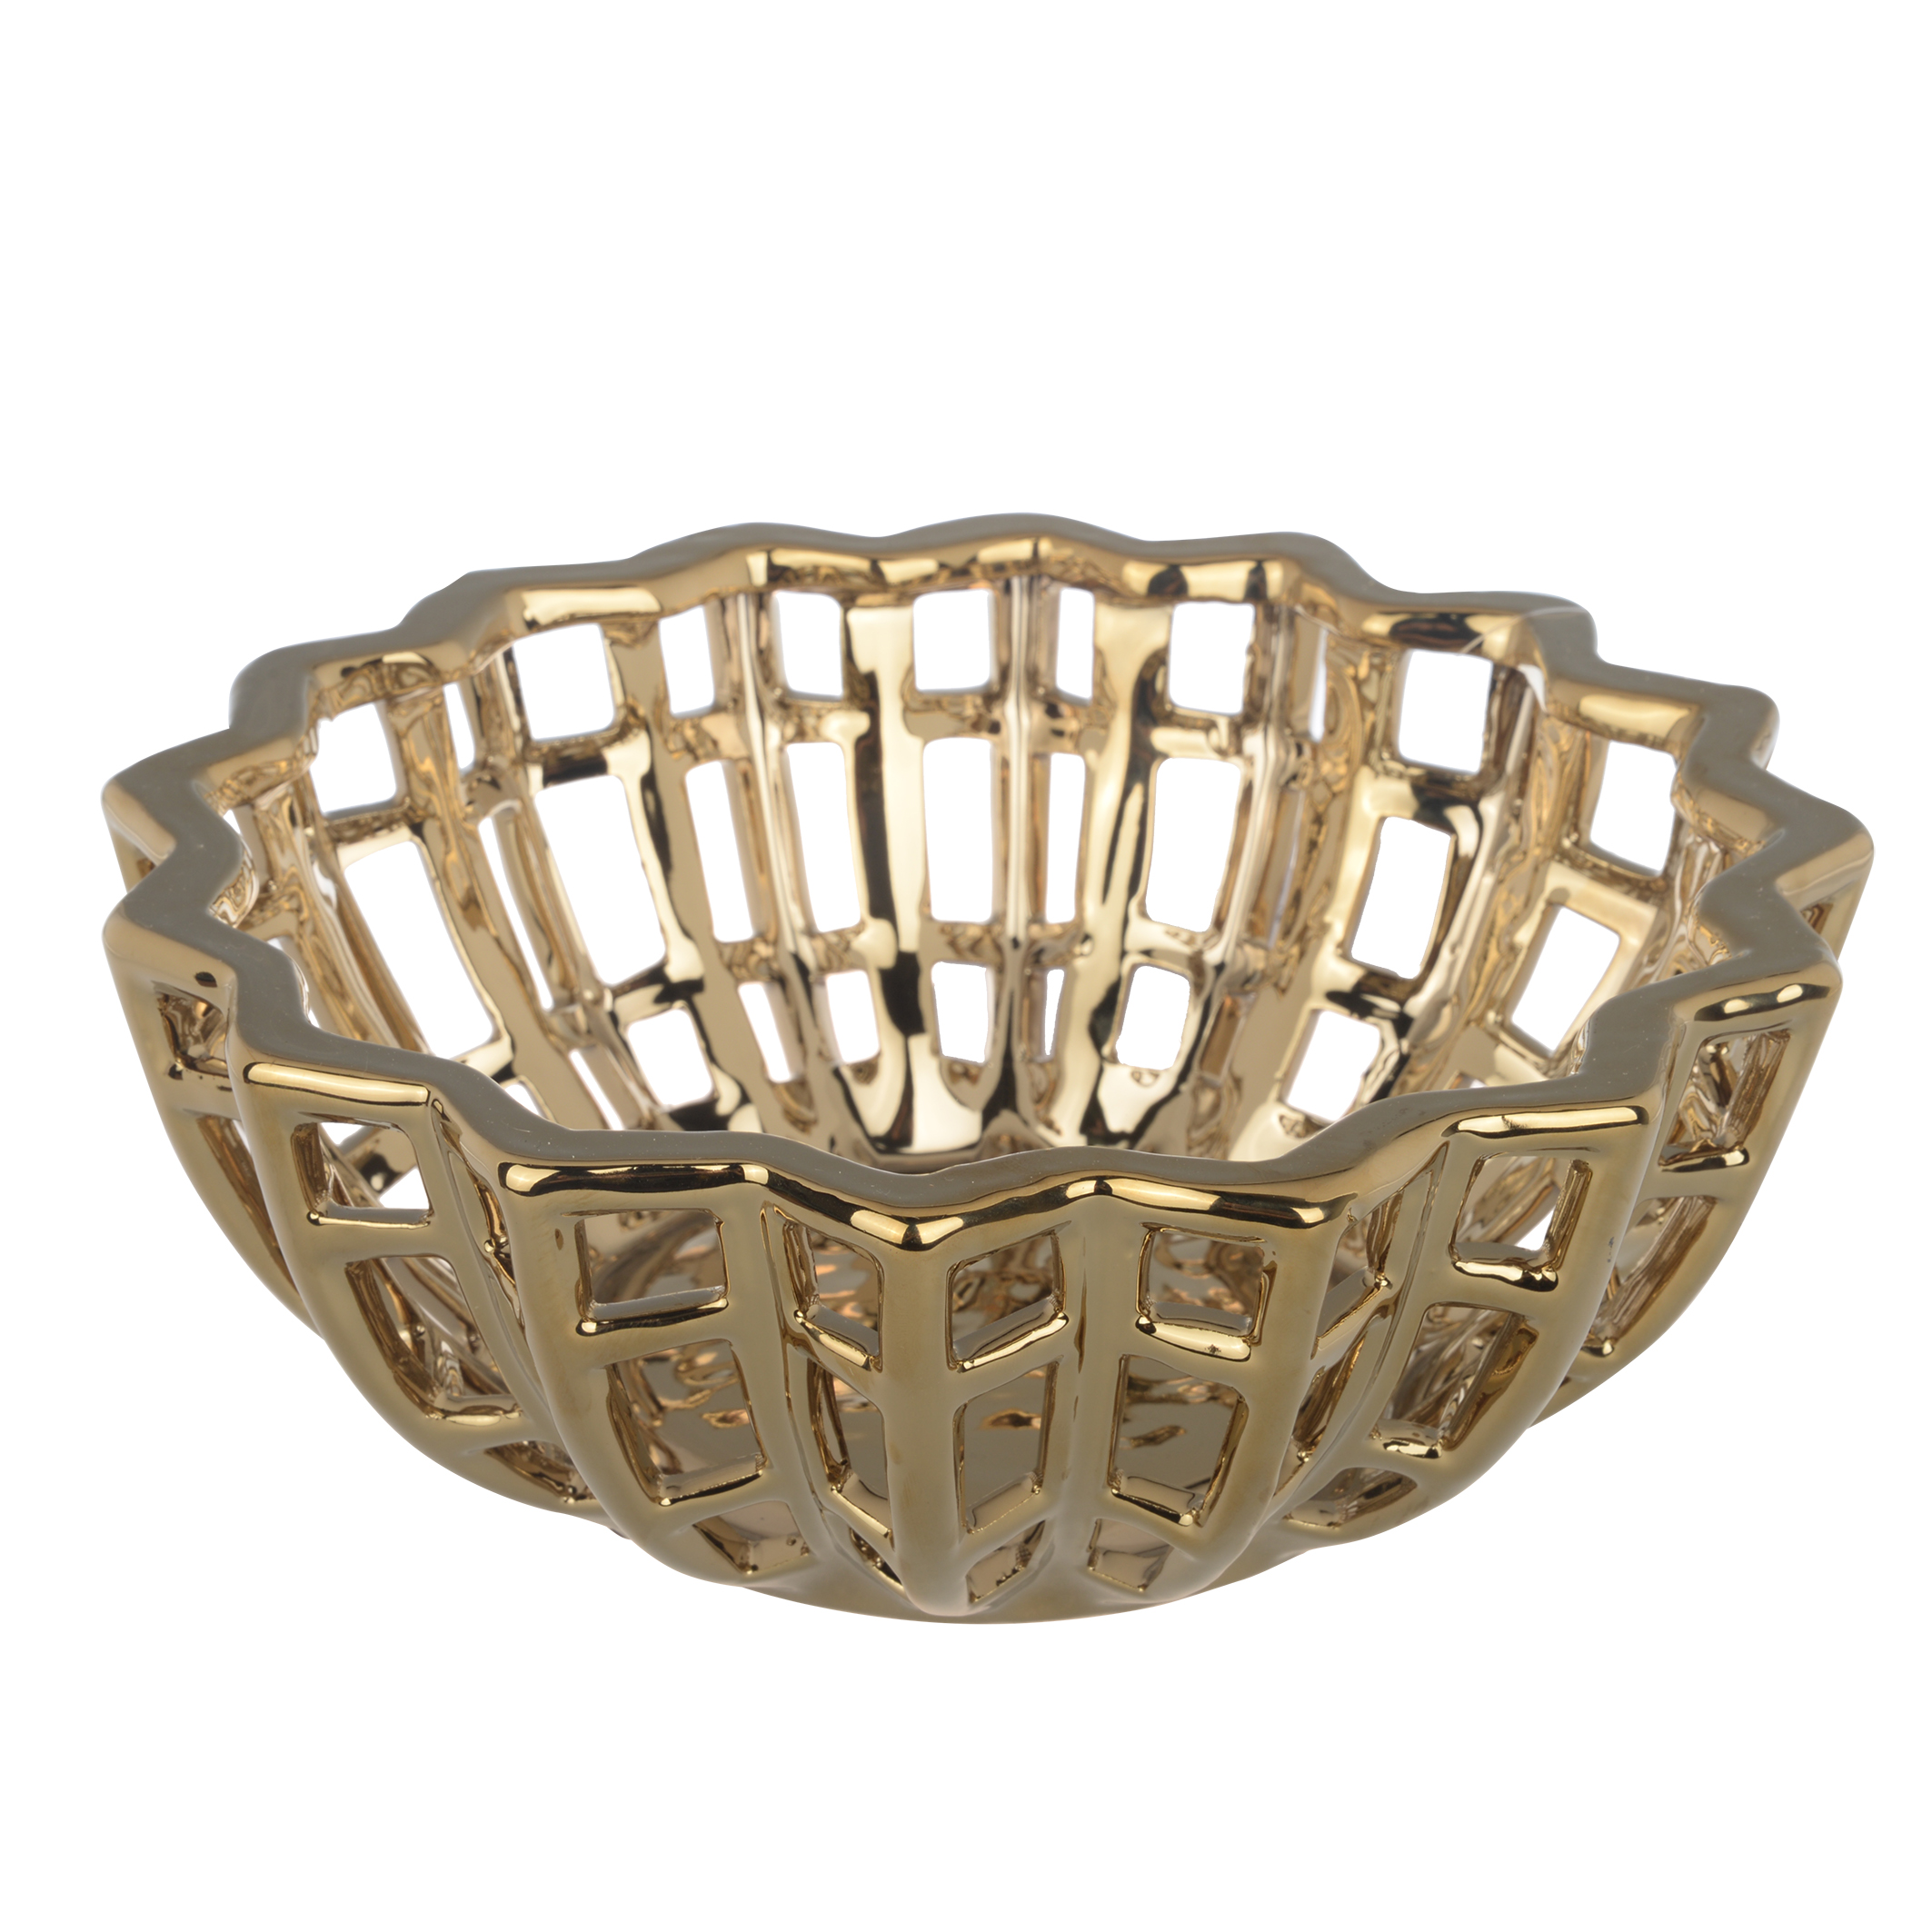 A&B Home Manzu Decorative Bowl, 9.5 by 3.5-Inch by A&B Home